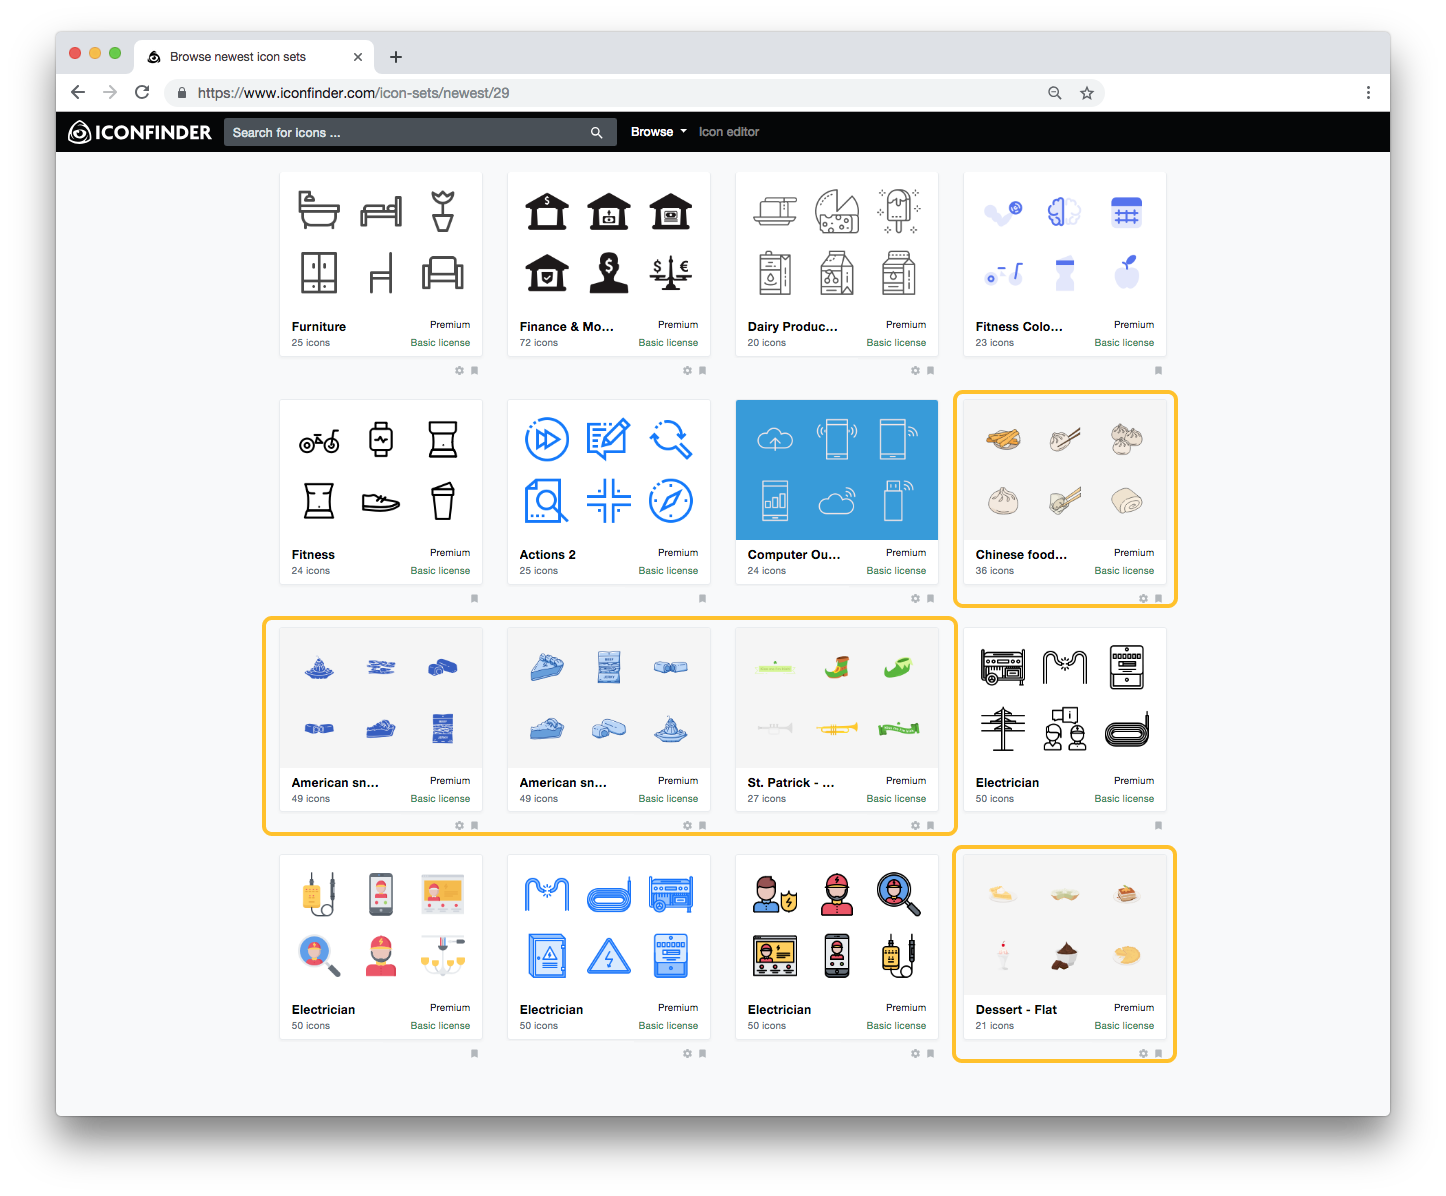 Iconfinder designer report Q2 2019 - The Iconfinder Blog